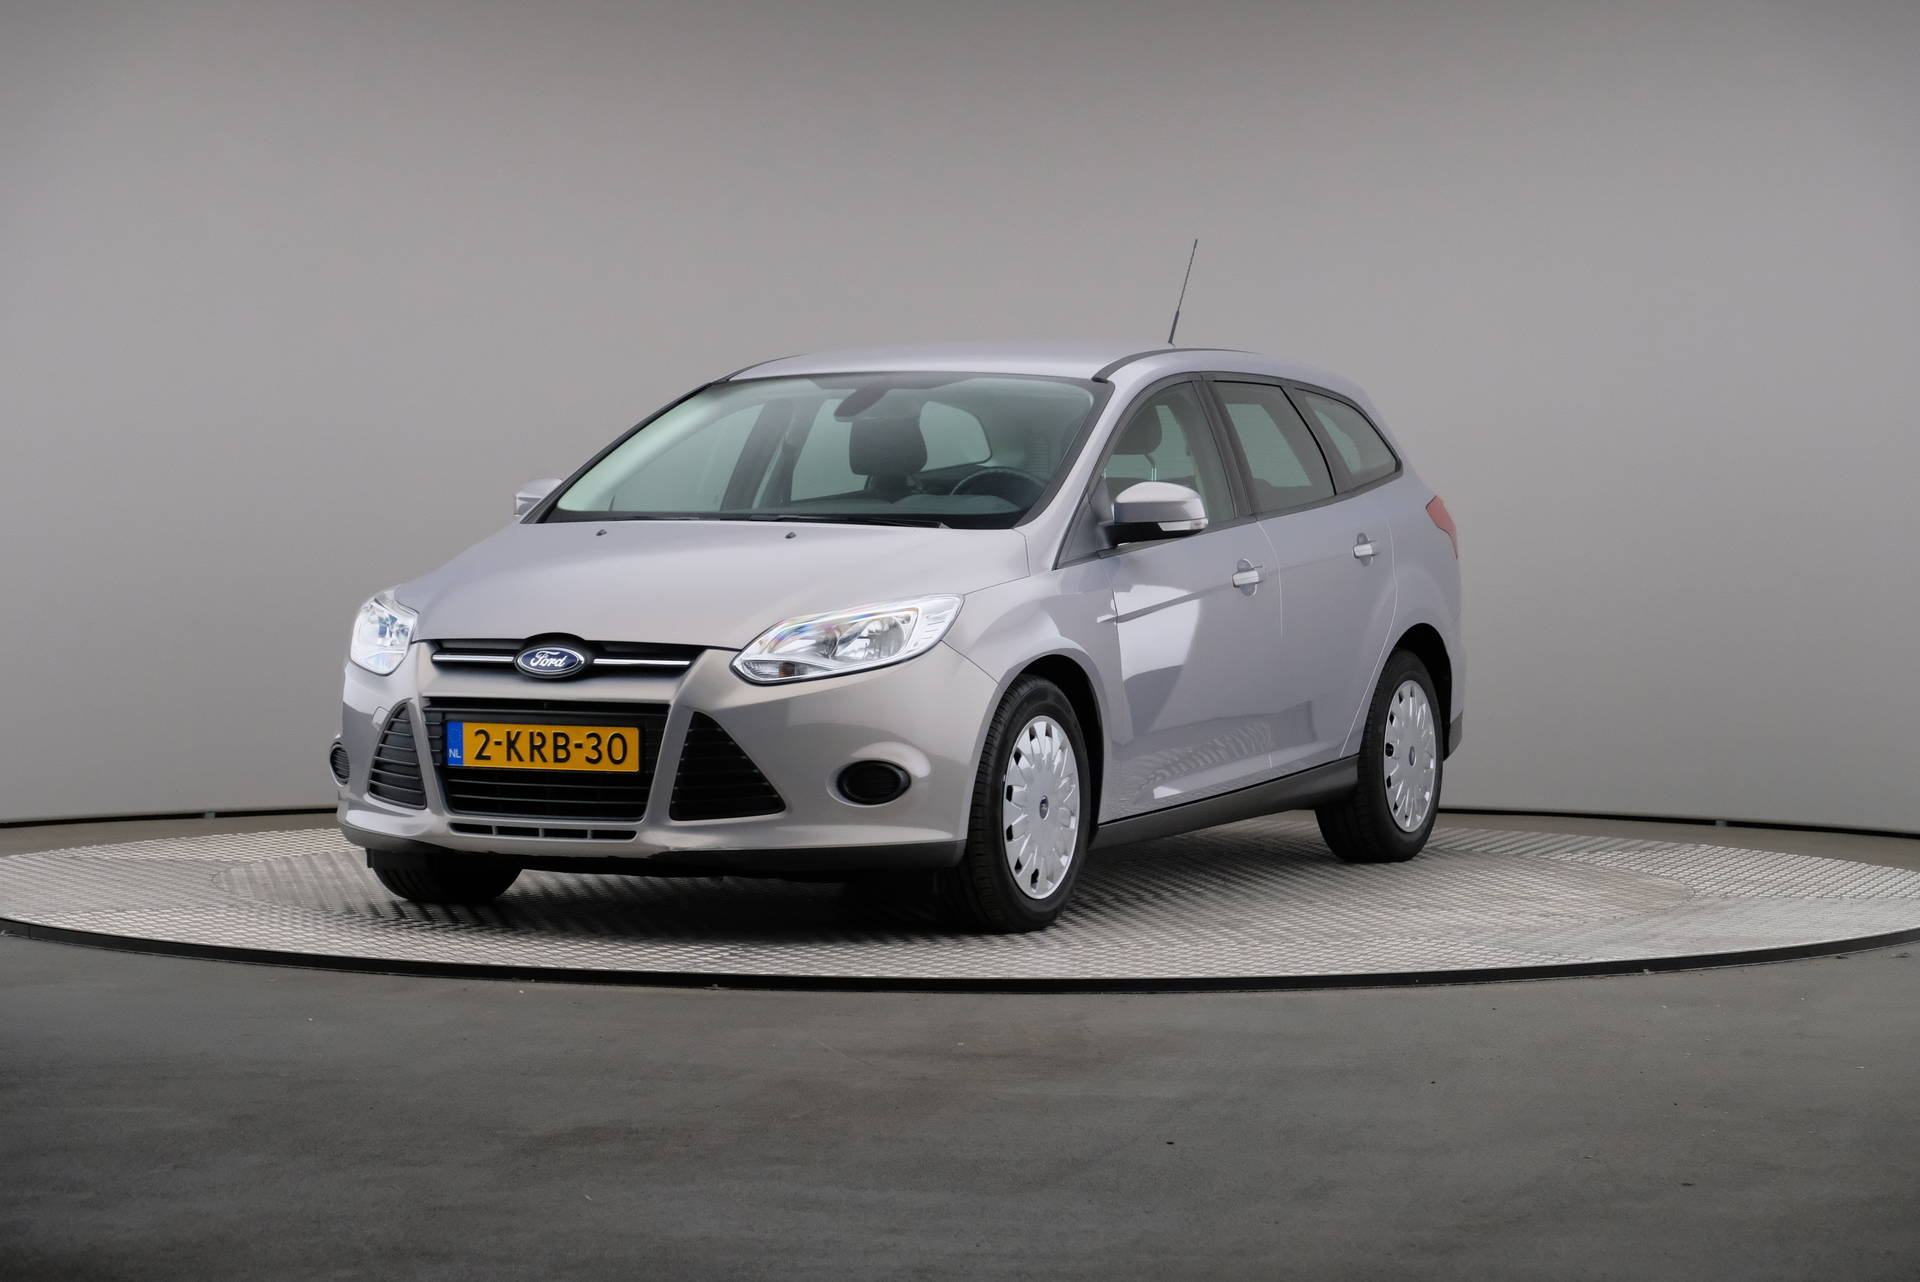 Ford Focus Wagon 1.6 TDCi ECOnetic Lease Trend, Navigatie, 360-image35